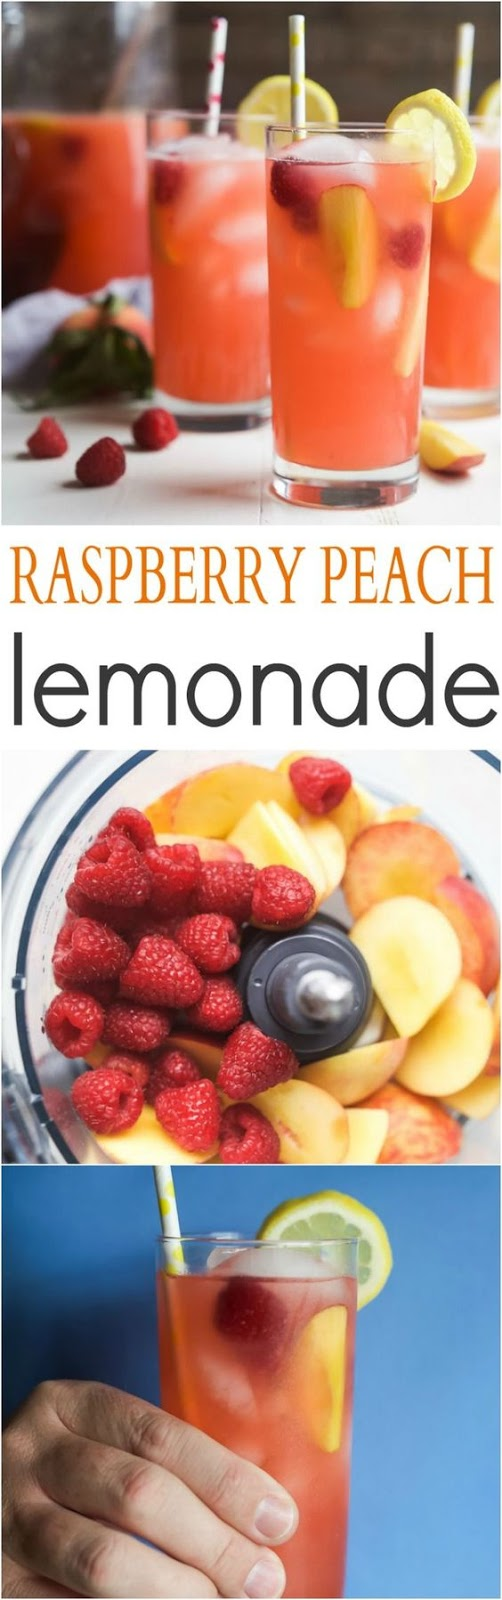 HOMEMADE RASPBERRY PEACH LEMONADE RECIPE